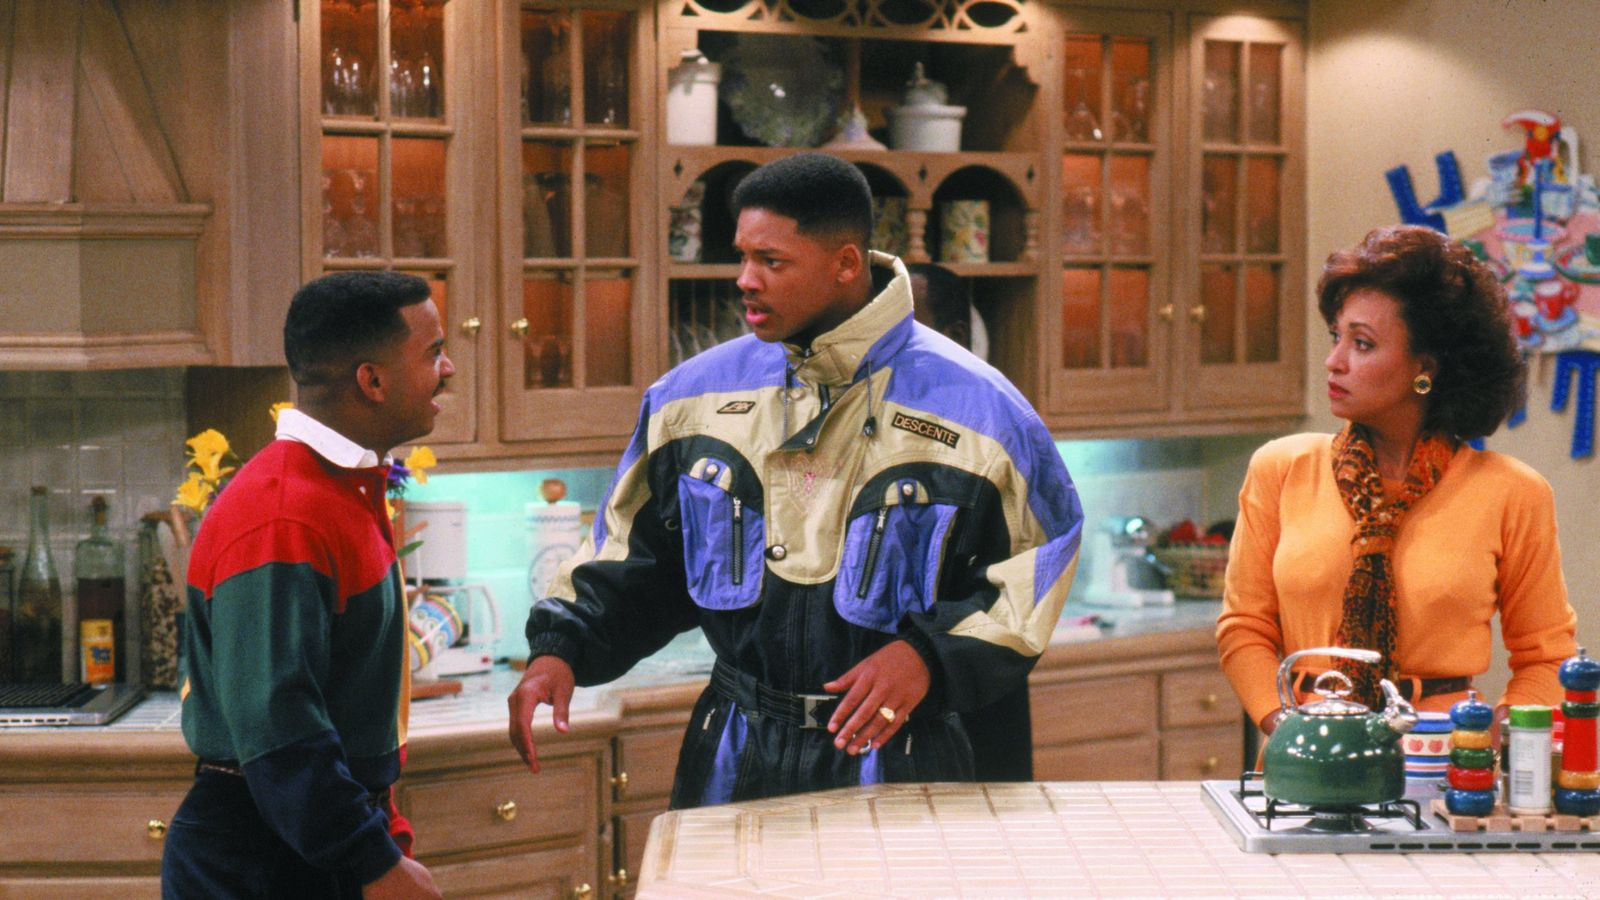 Fresh Prince star told he can't copyright 'Carlton dance'